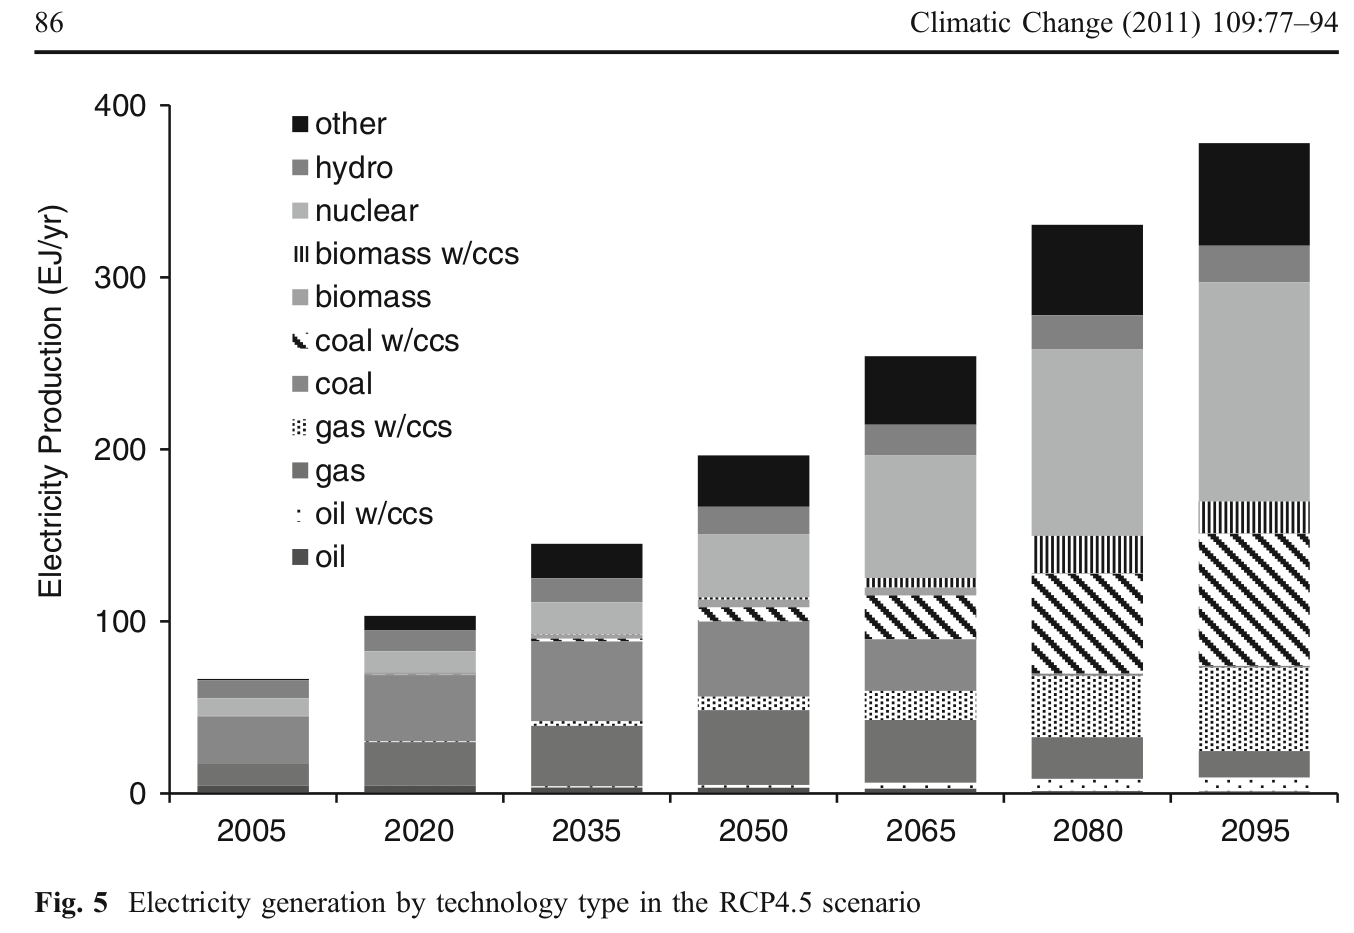 Electricity generation by technology type in the RCP4.5 scenario 2005 - 2095